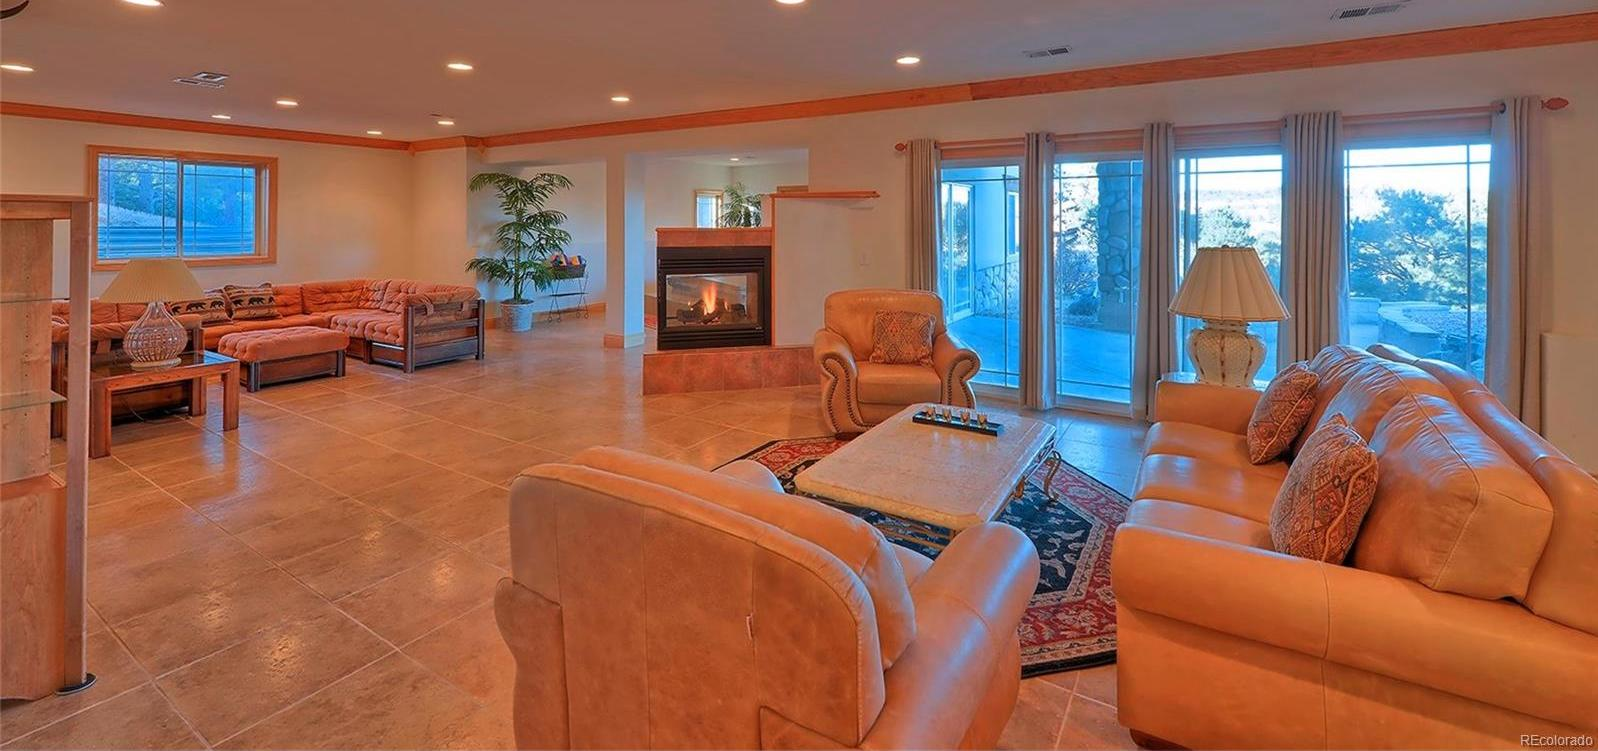 Expansive lower level recreation room, spa, gym & ample storage room across full